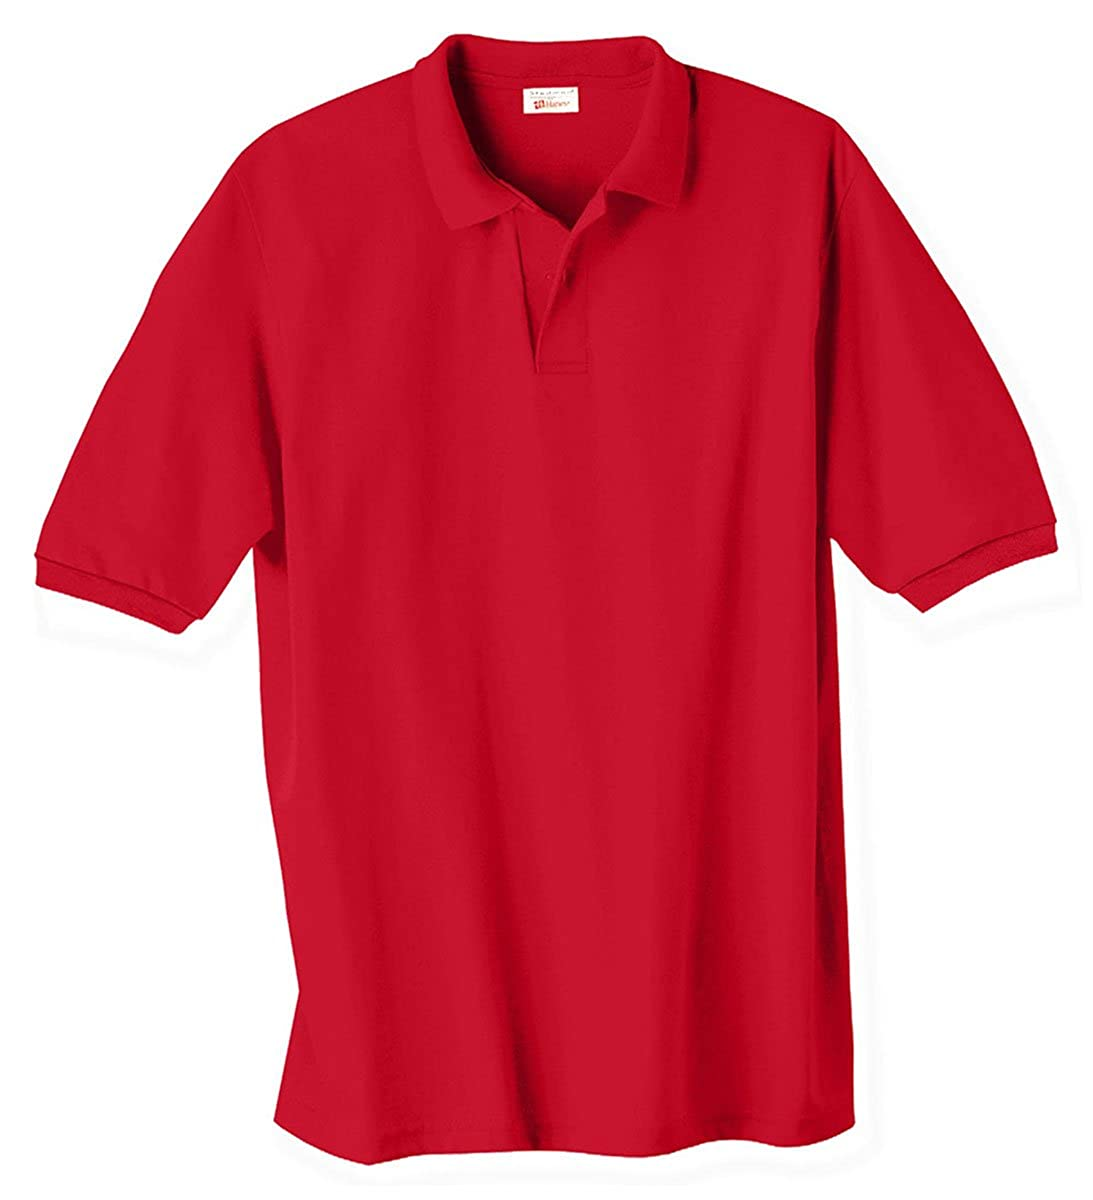 Medium Stedman by Hanes 5.5 oz 50//50 Jersey Knit Polo in Deep Red